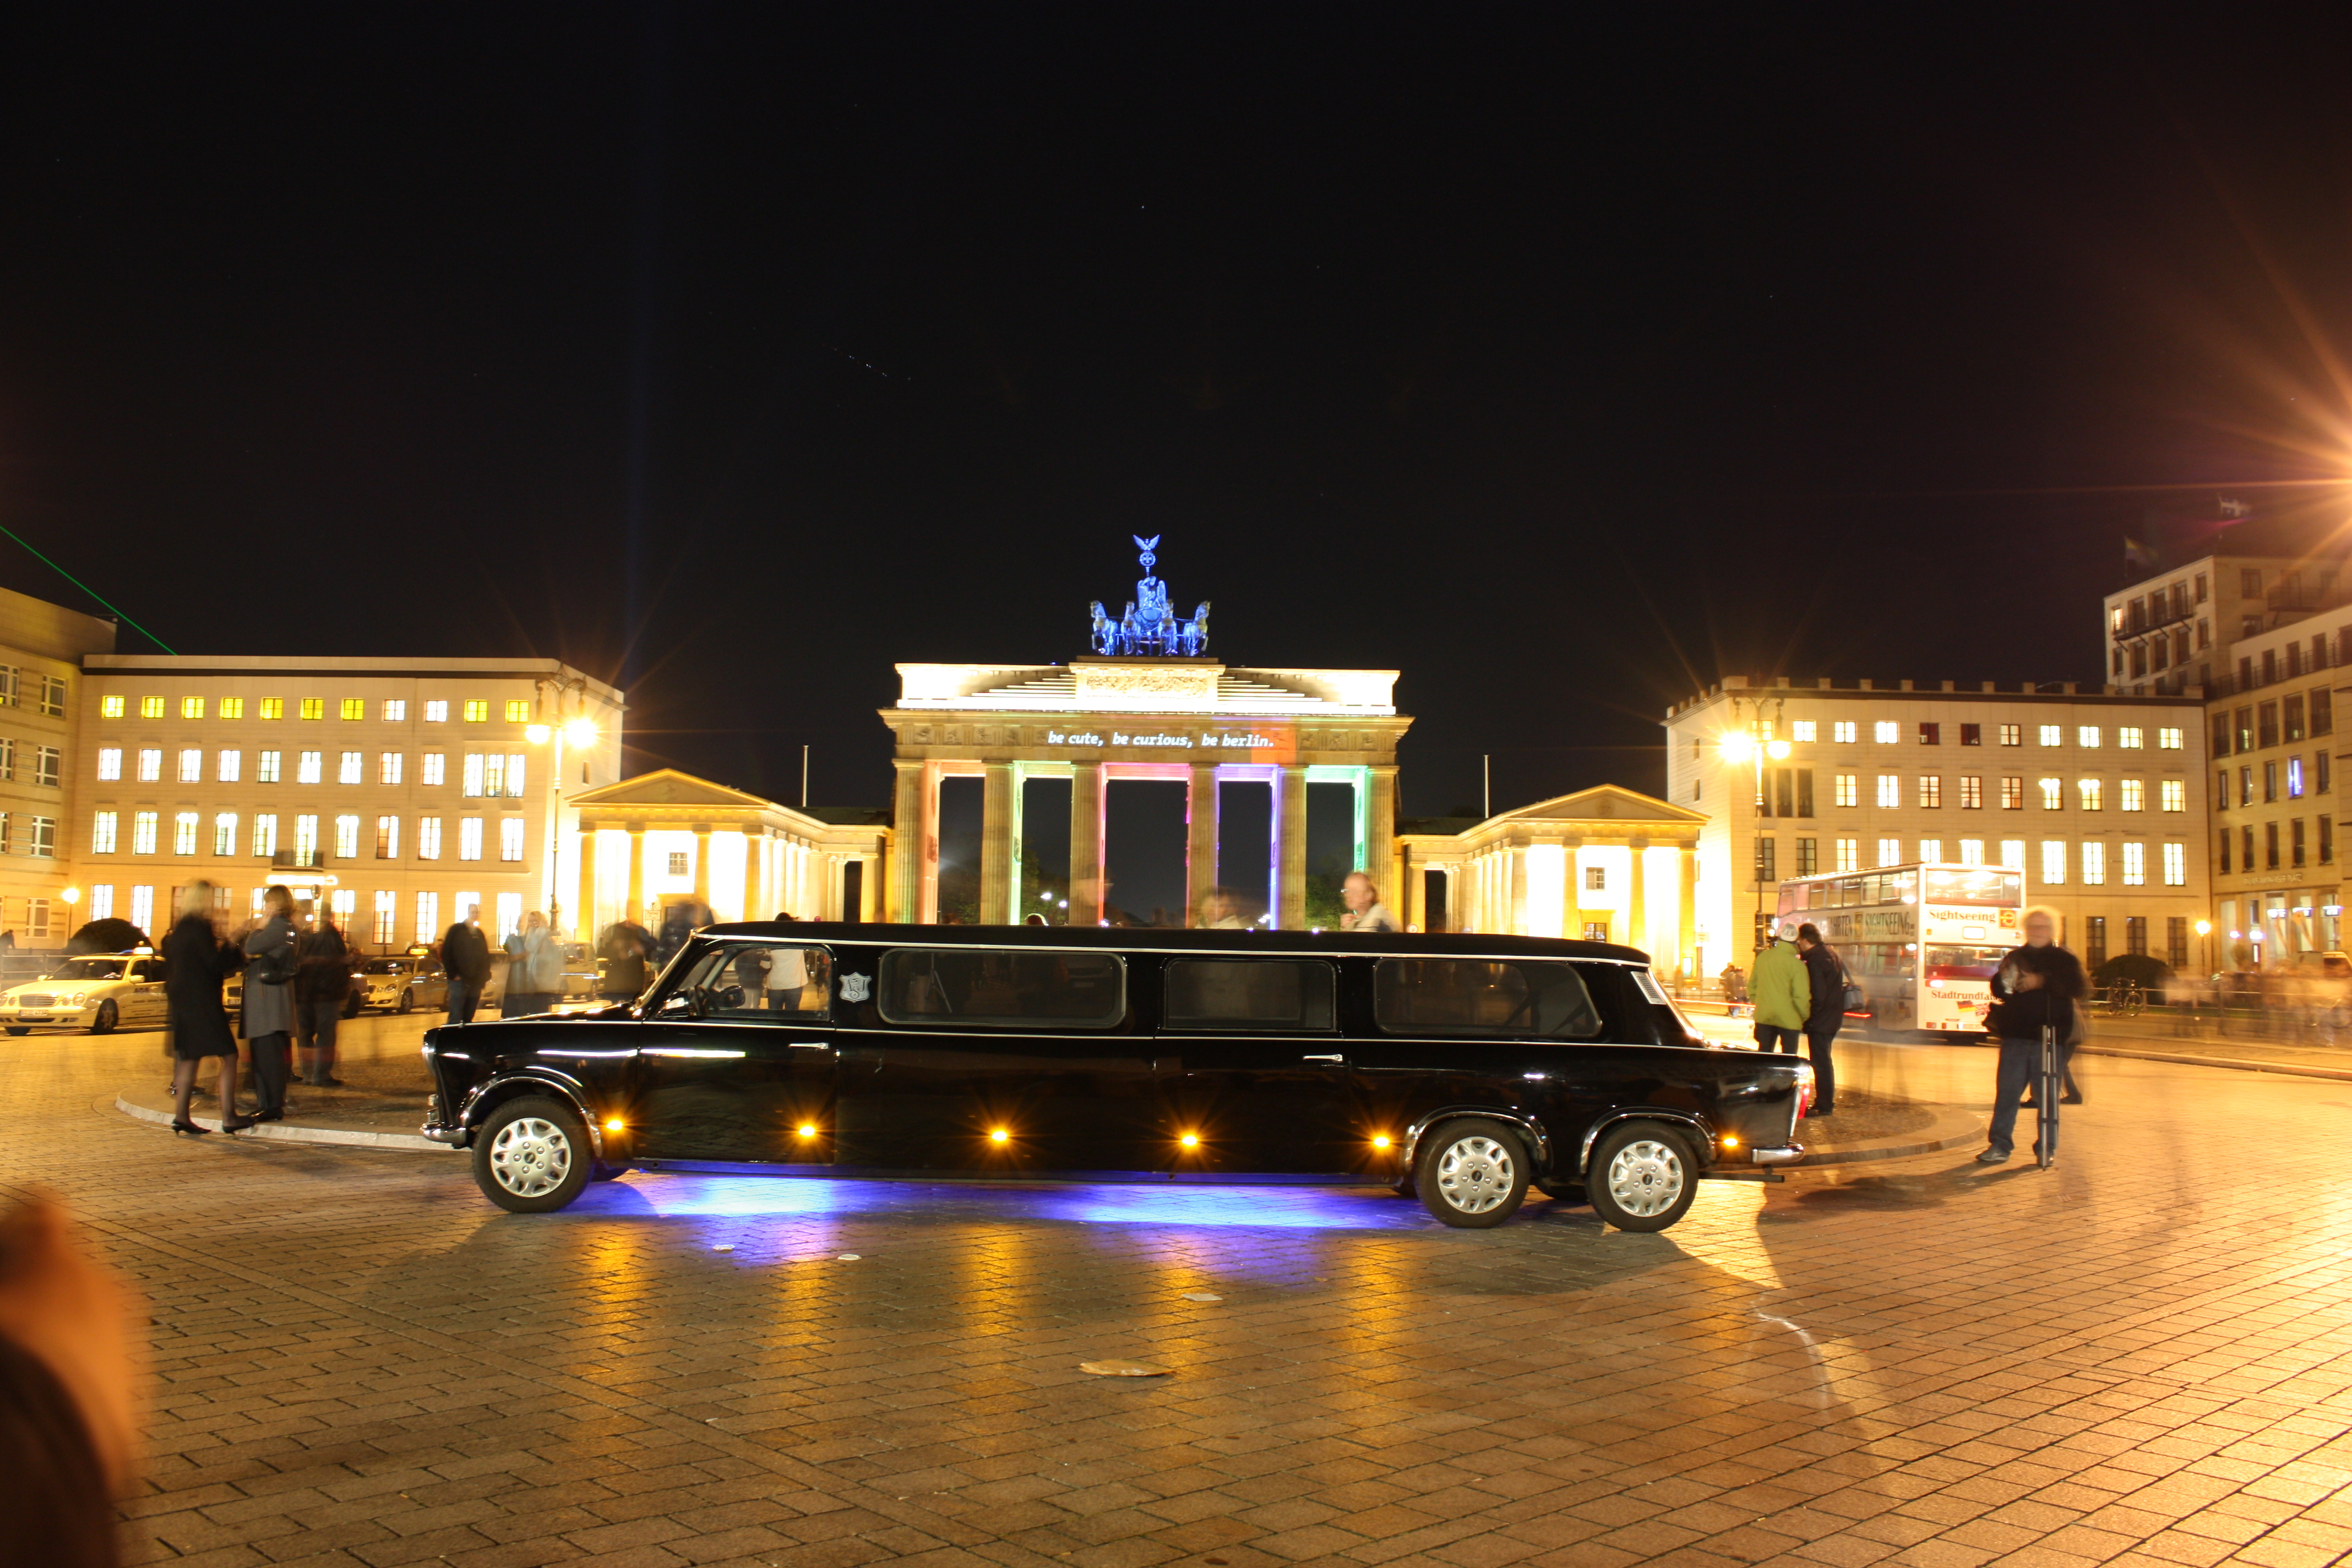 file trabi xxl trabant city of lights berlin wikimedia commons. Black Bedroom Furniture Sets. Home Design Ideas